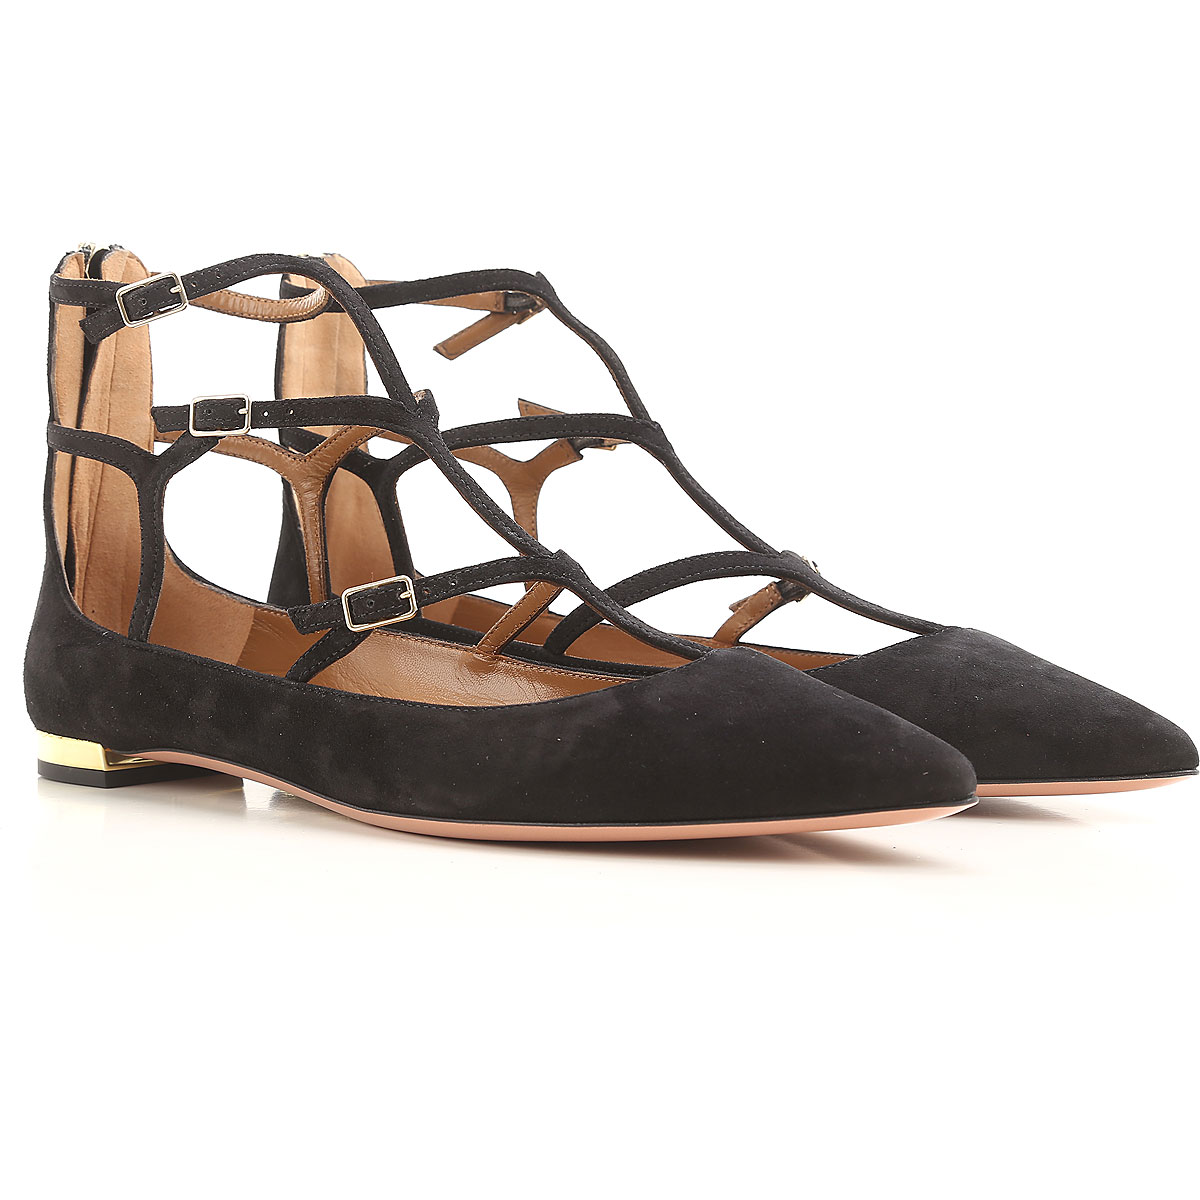 Image of Aquazzura Ballet Flats Ballerina Shoes for Women On Sale in Outlet, Black, Suede leather, 2017, 7 8.5 9 9.5